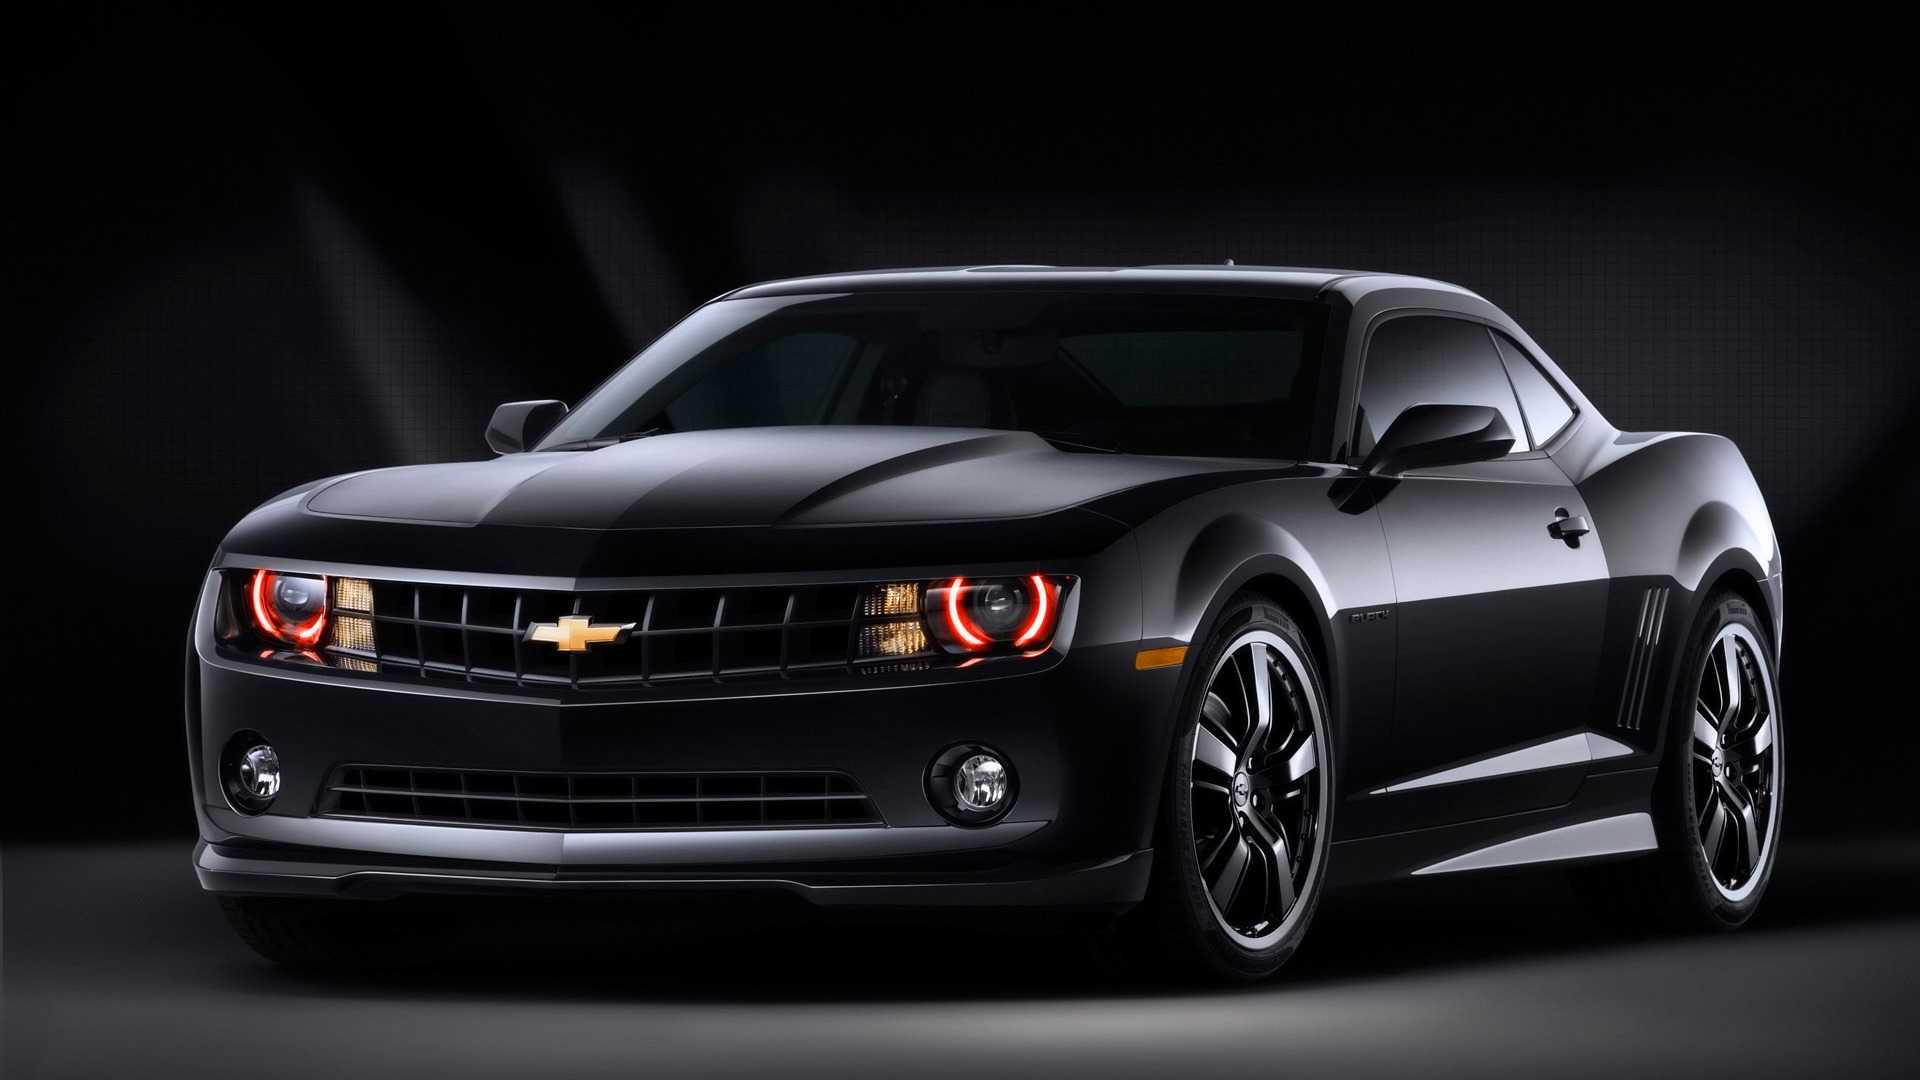 HD Wallpapers 1080p Cars wallpapers55com   Best Wallpapers for PCs 1920x1080